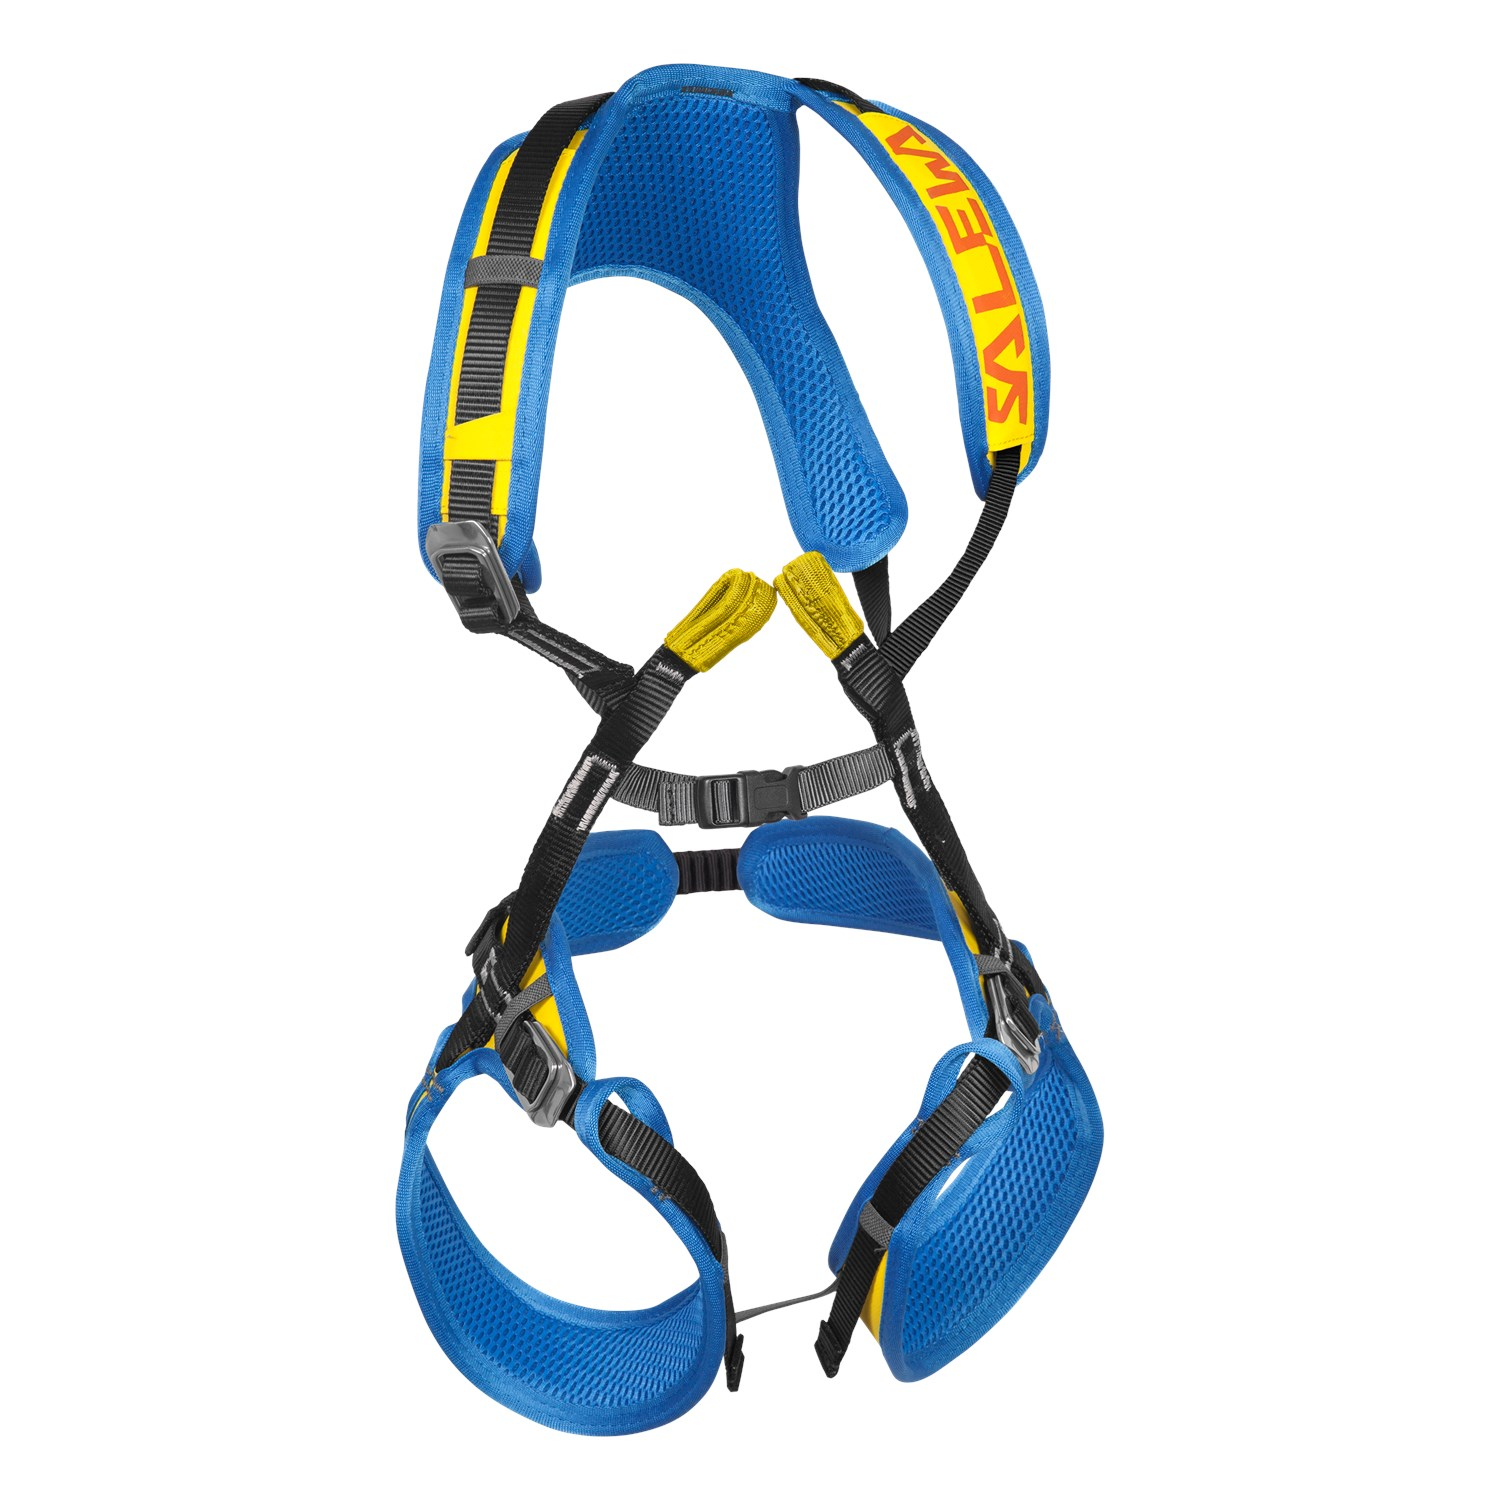 Toddler Leash Harness To Keep Kids Close For Child Safety Padded And Comfortable